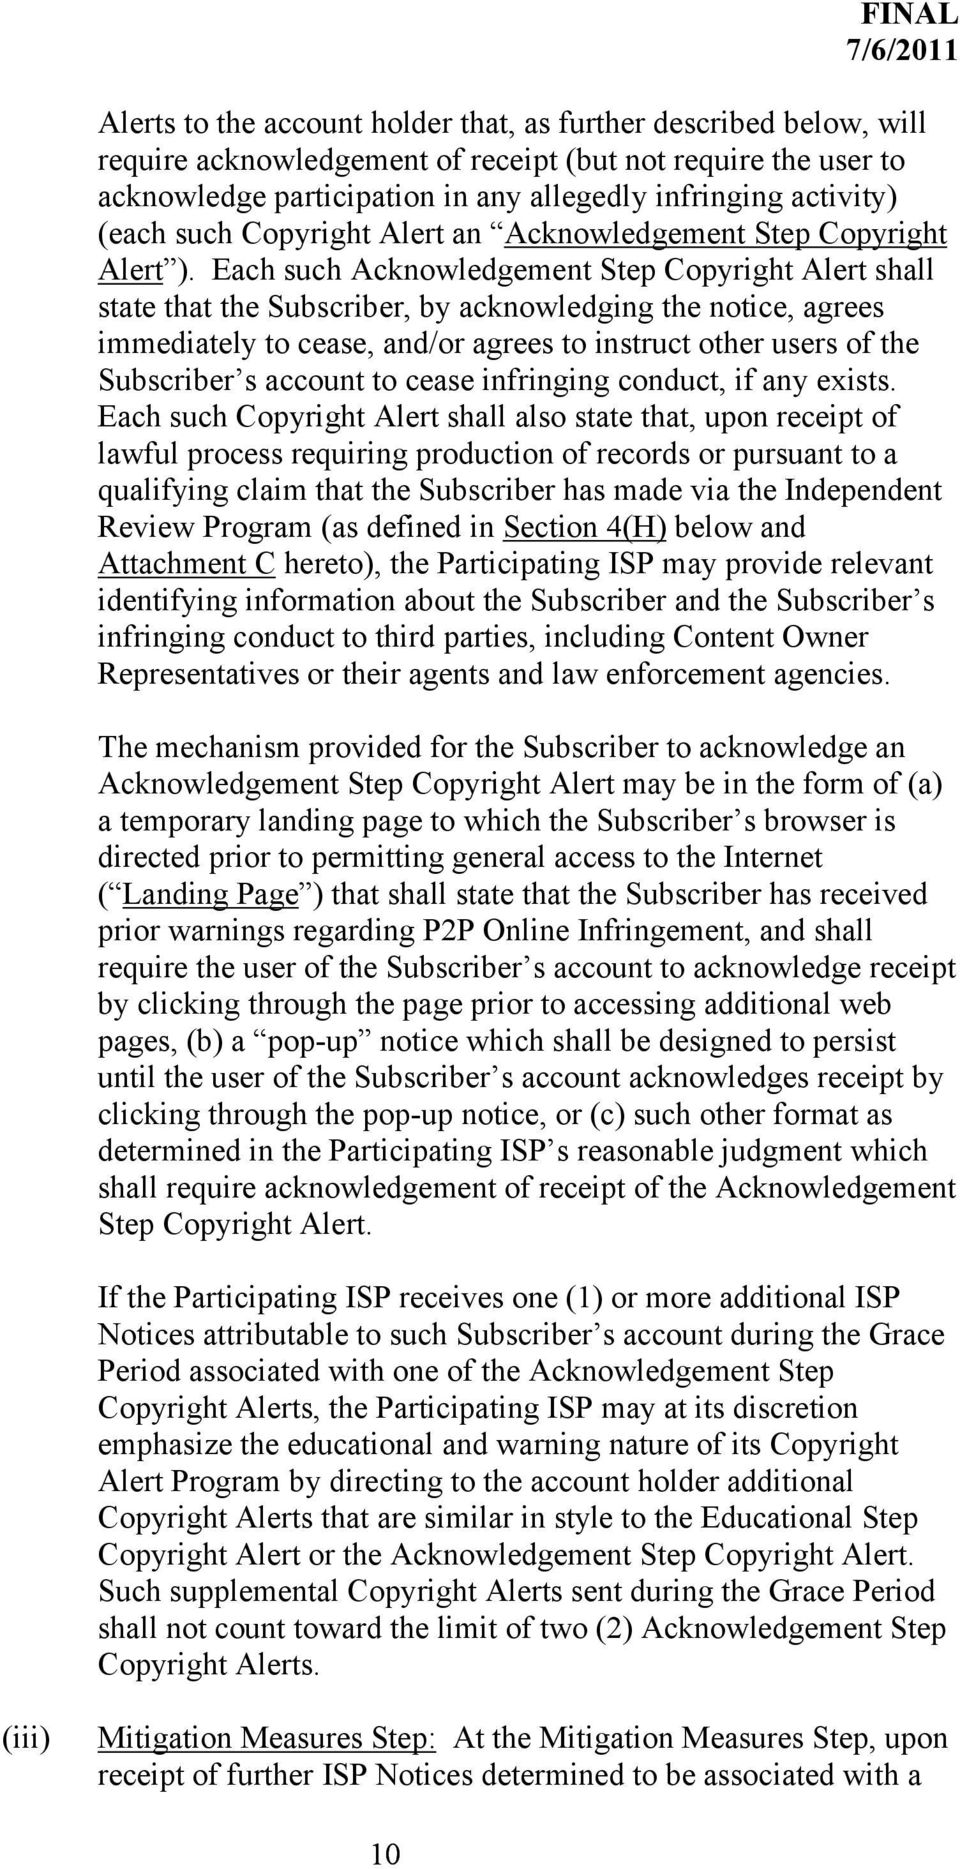 Each such Acknowledgement Step Copyright Alert shall state that the Subscriber, by acknowledging the notice, agrees immediately to cease, and/or agrees to instruct other users of the Subscriber s